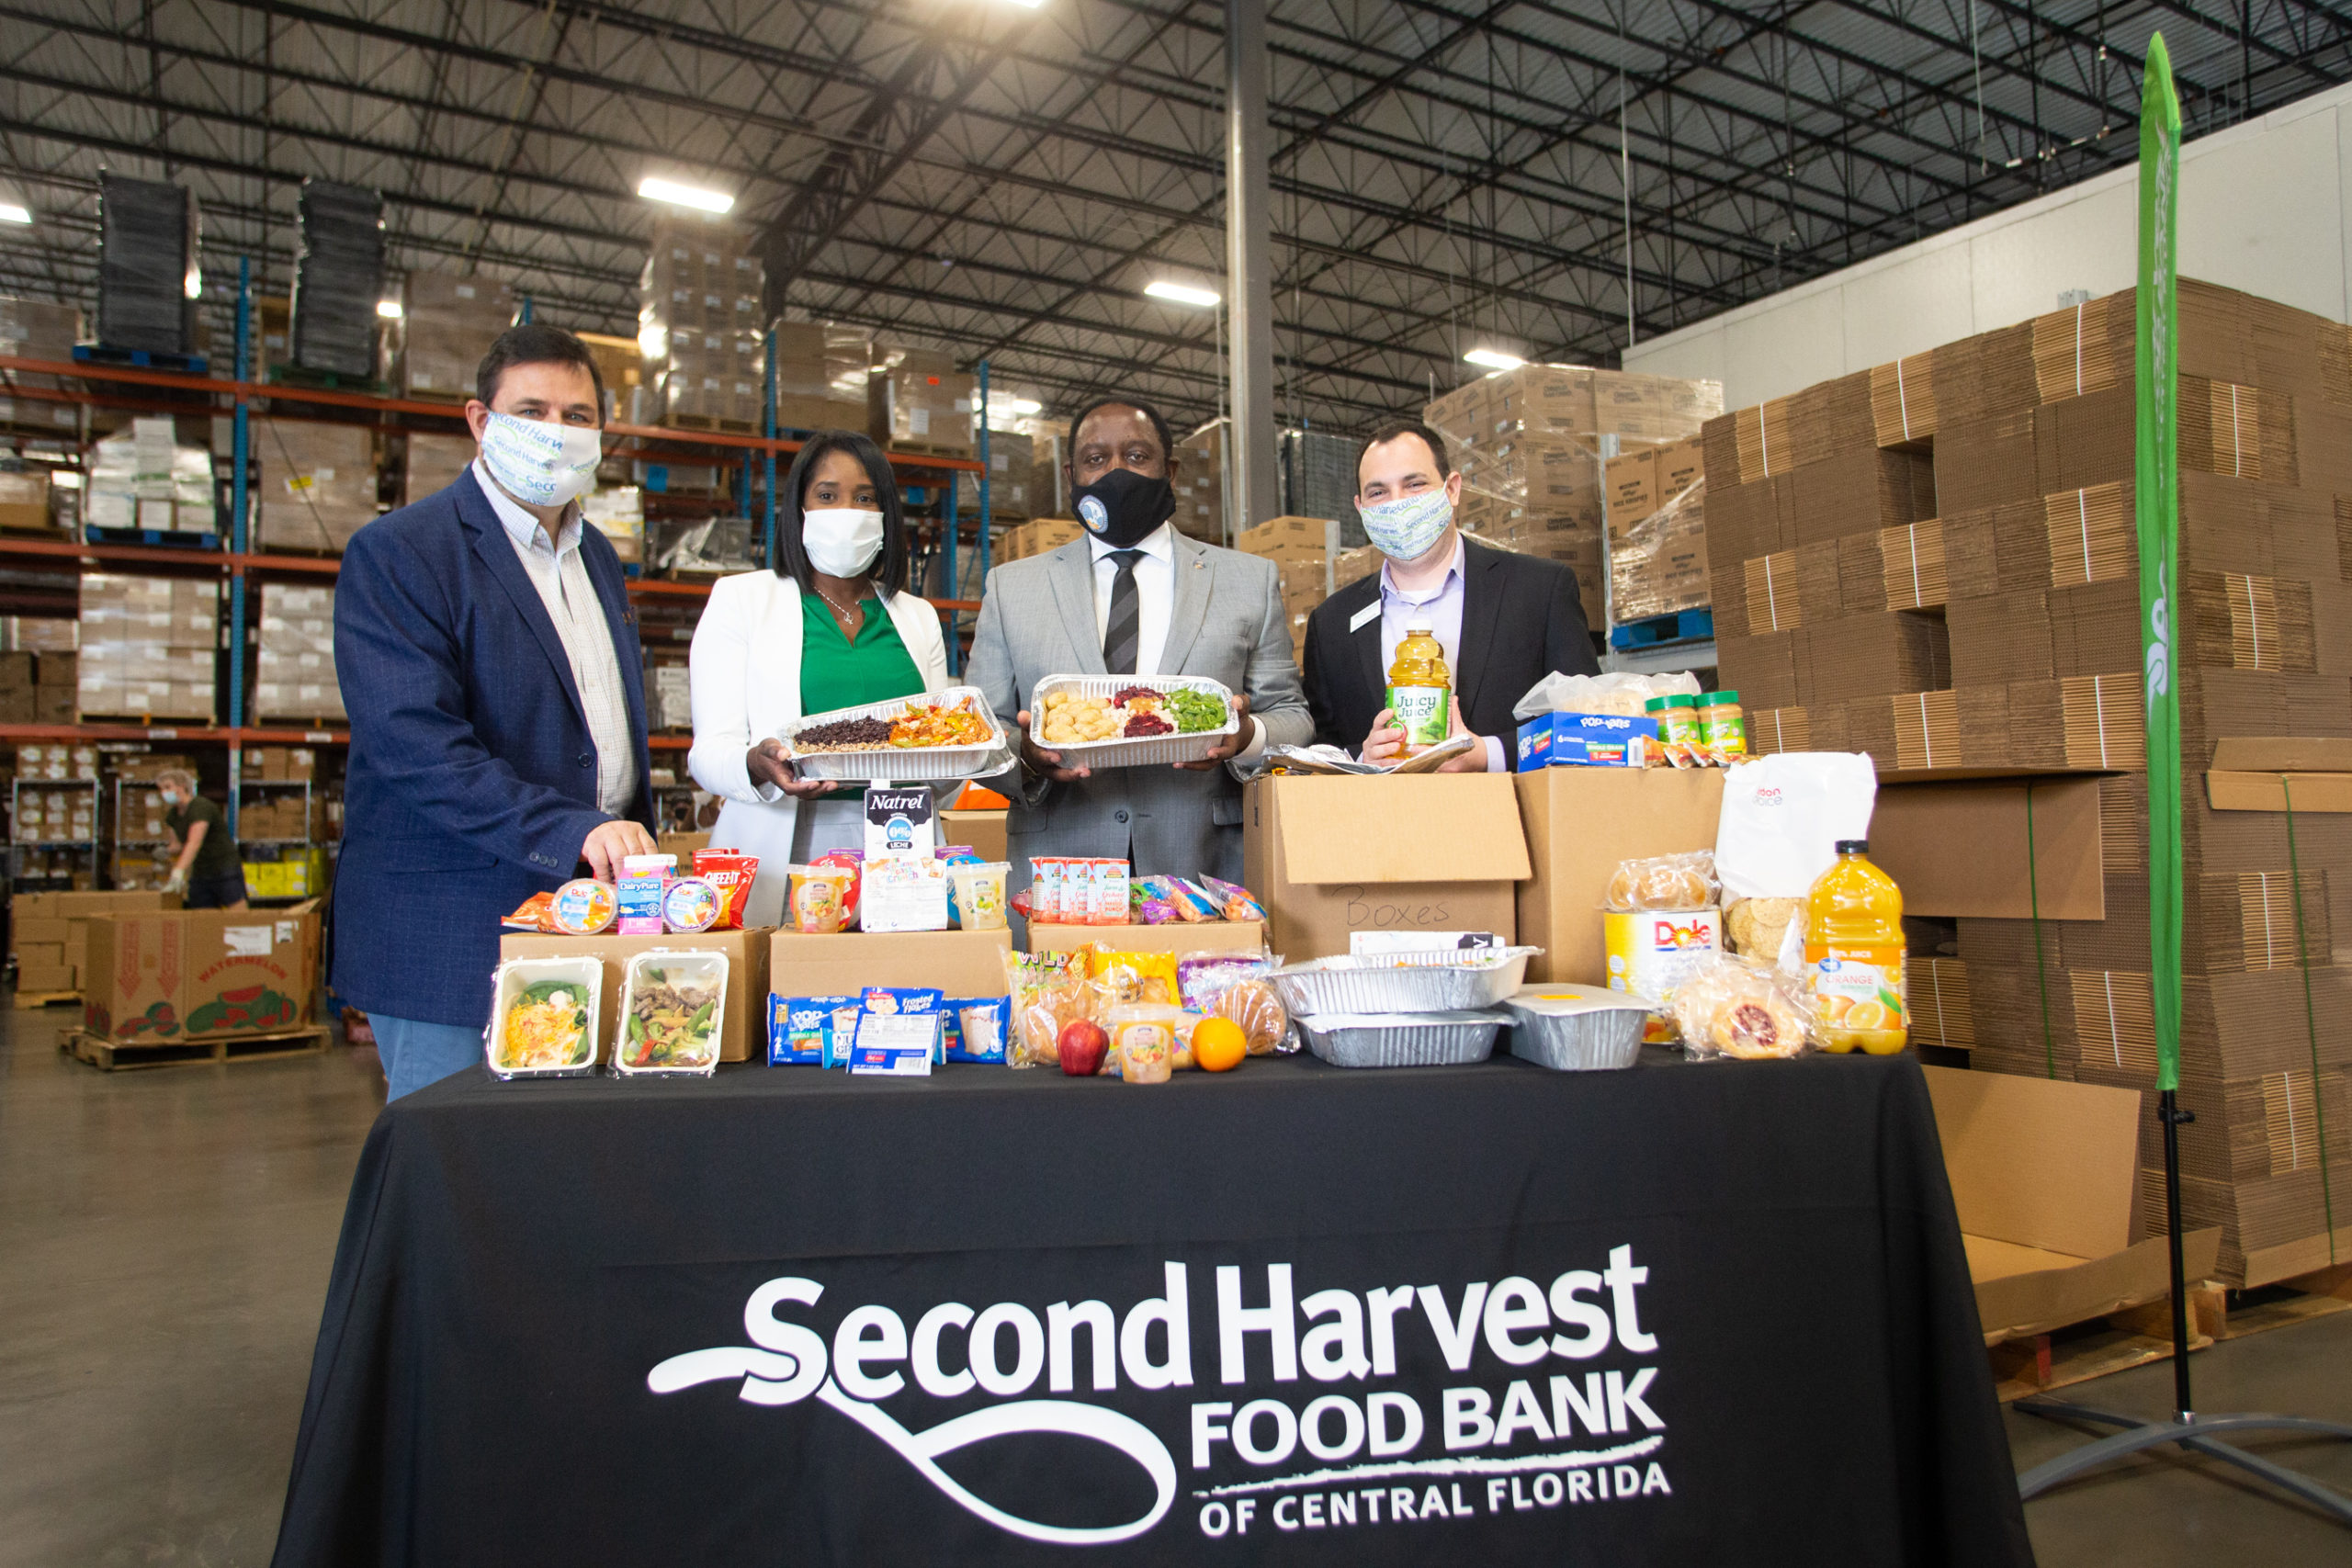 Chief Development Officer at Second Harvest Food Bank of Central Florida Greg Higgerson; District 6 Commissioner Victoria P. Siplin; Orange County Mayor Jerry L. Demings; and Director of Philanthropy at Second Harvest Dan Samuels celebrate the opening of Mercy Kitchen.